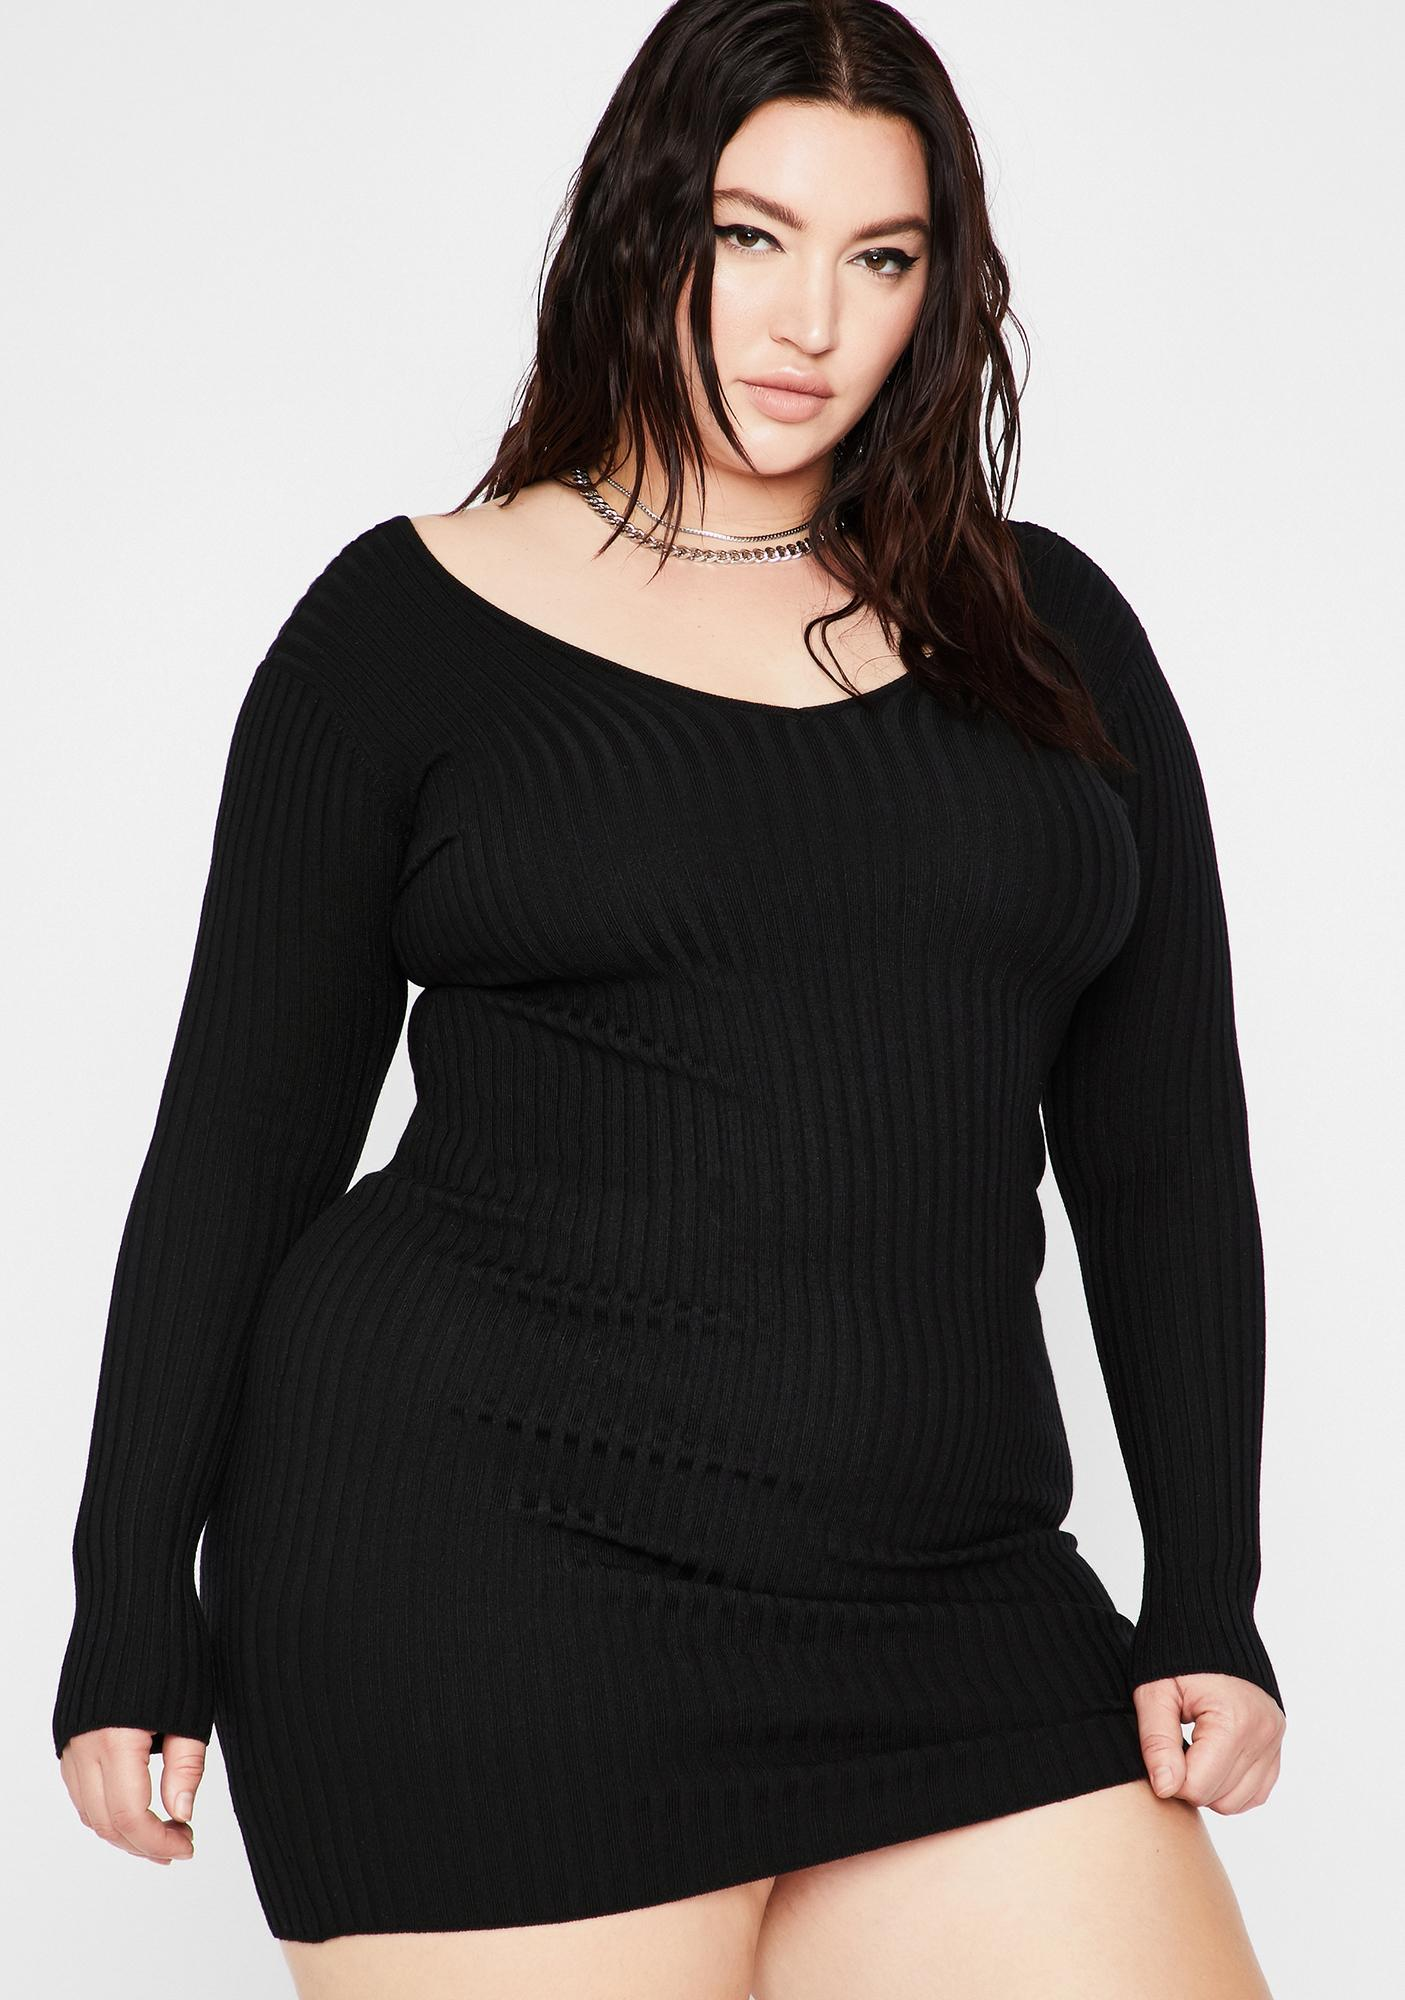 True Baddie Season Sweater Dress